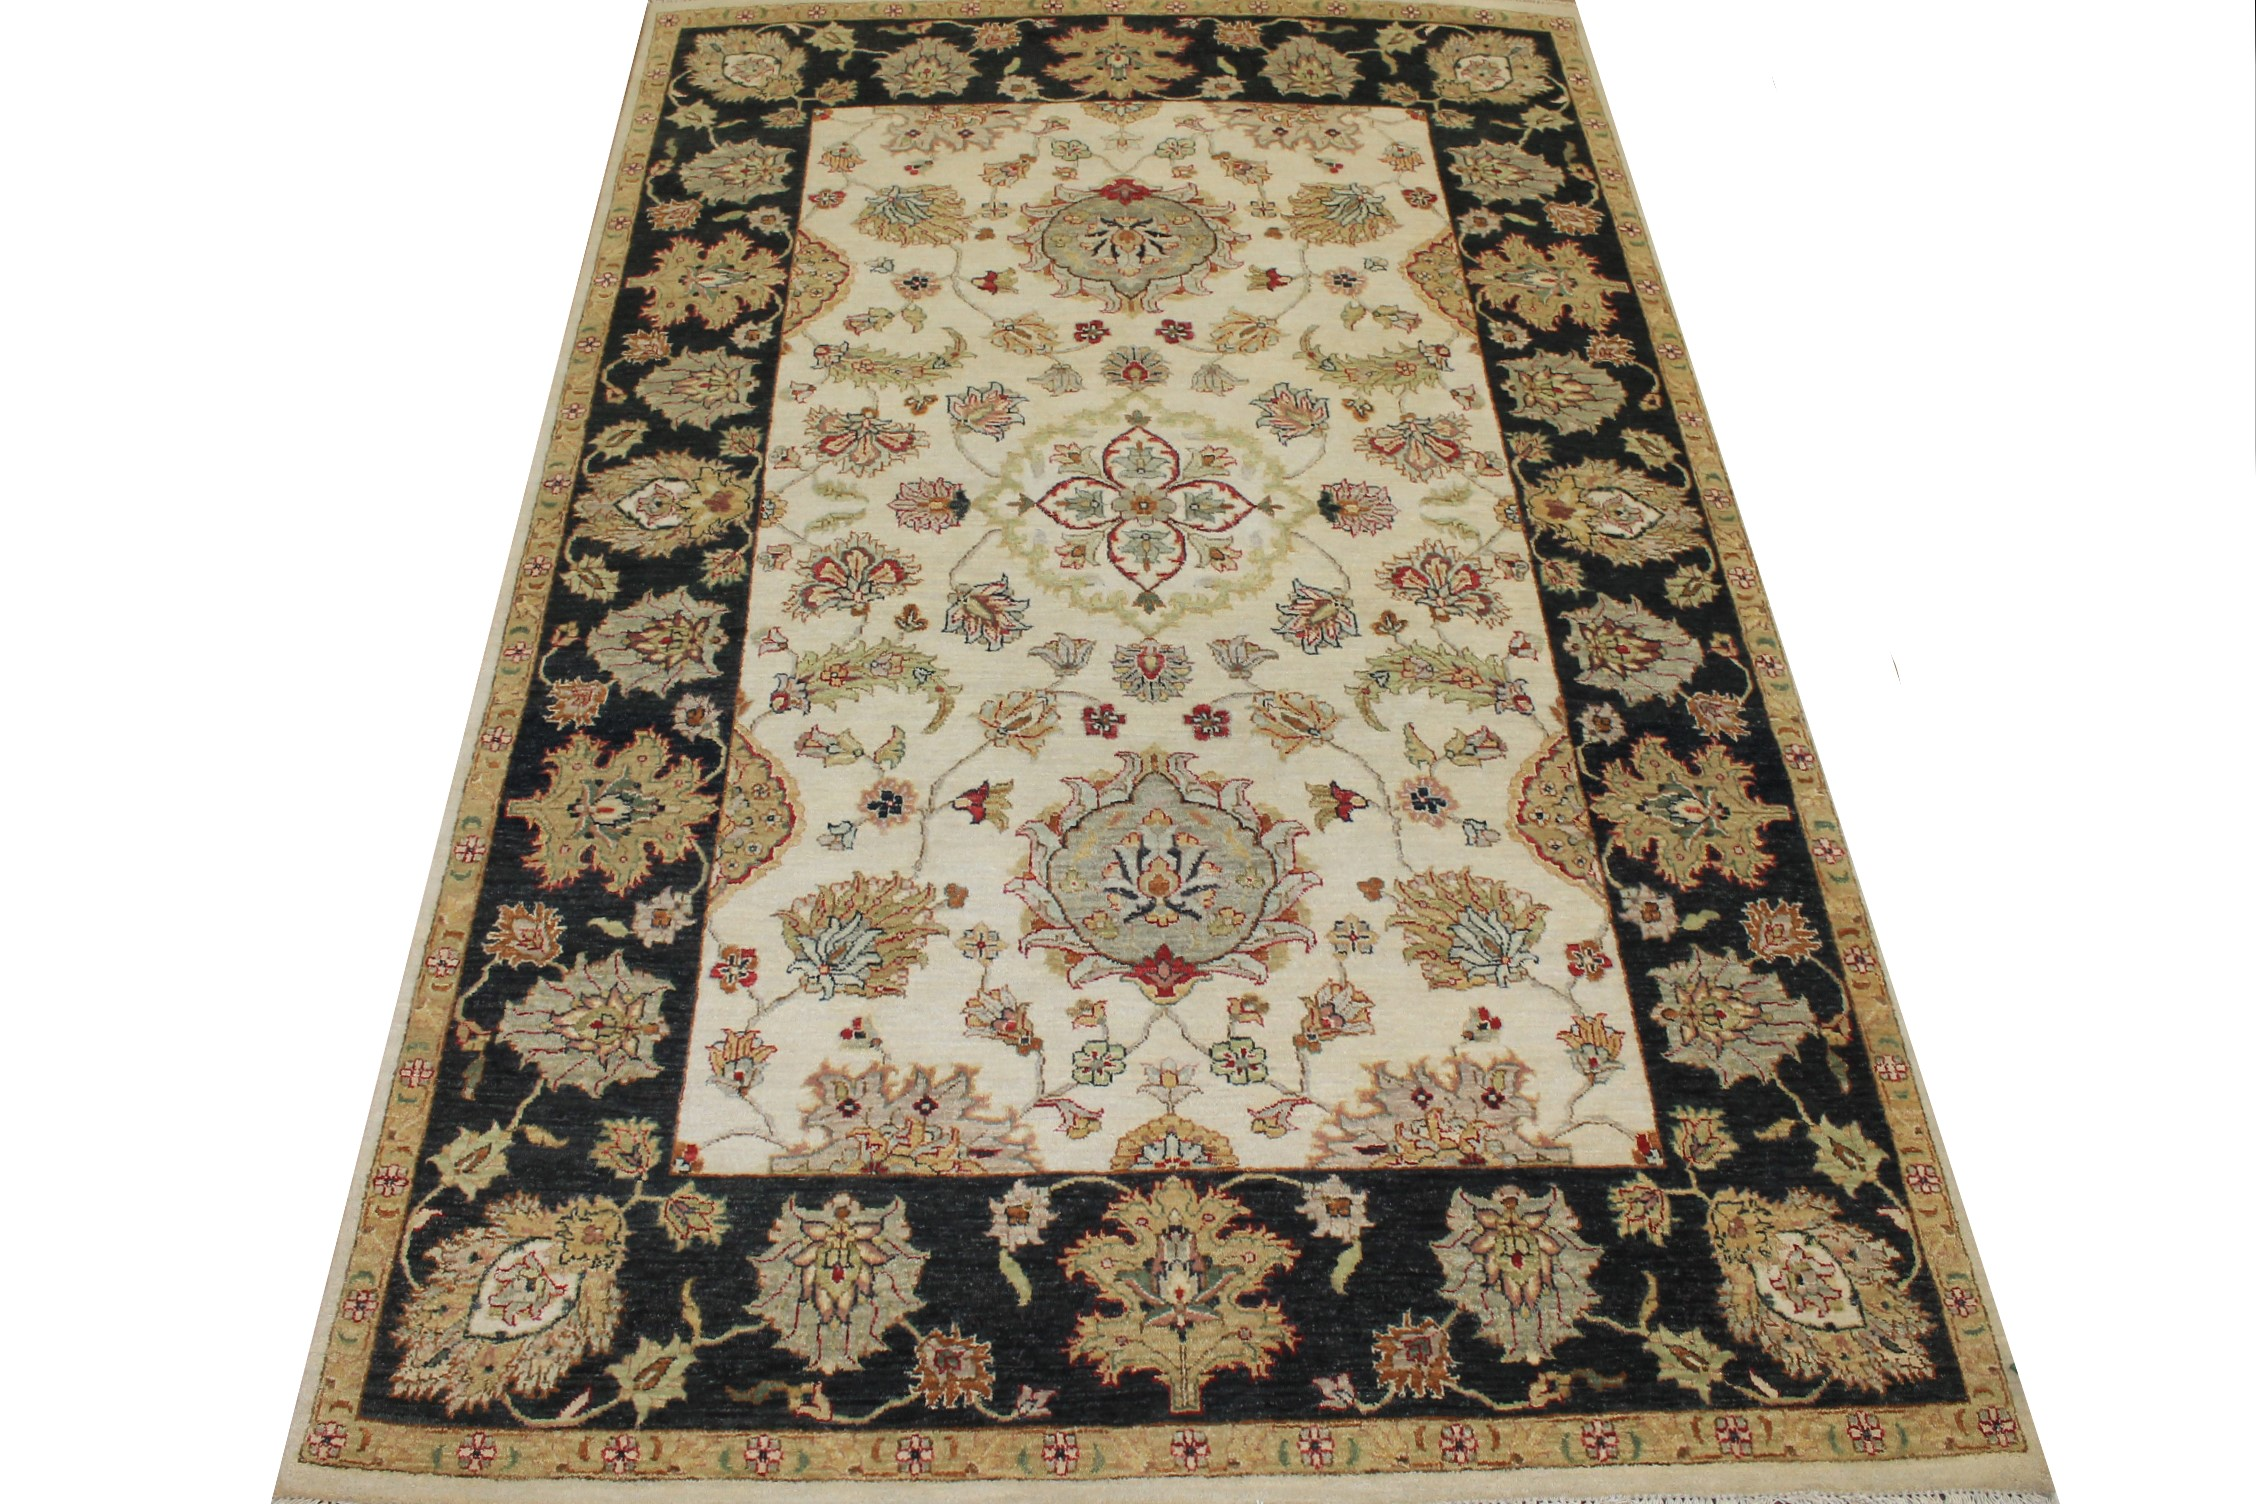 6x9 Traditional Hand Knotted Wool Area Rug - MR024944